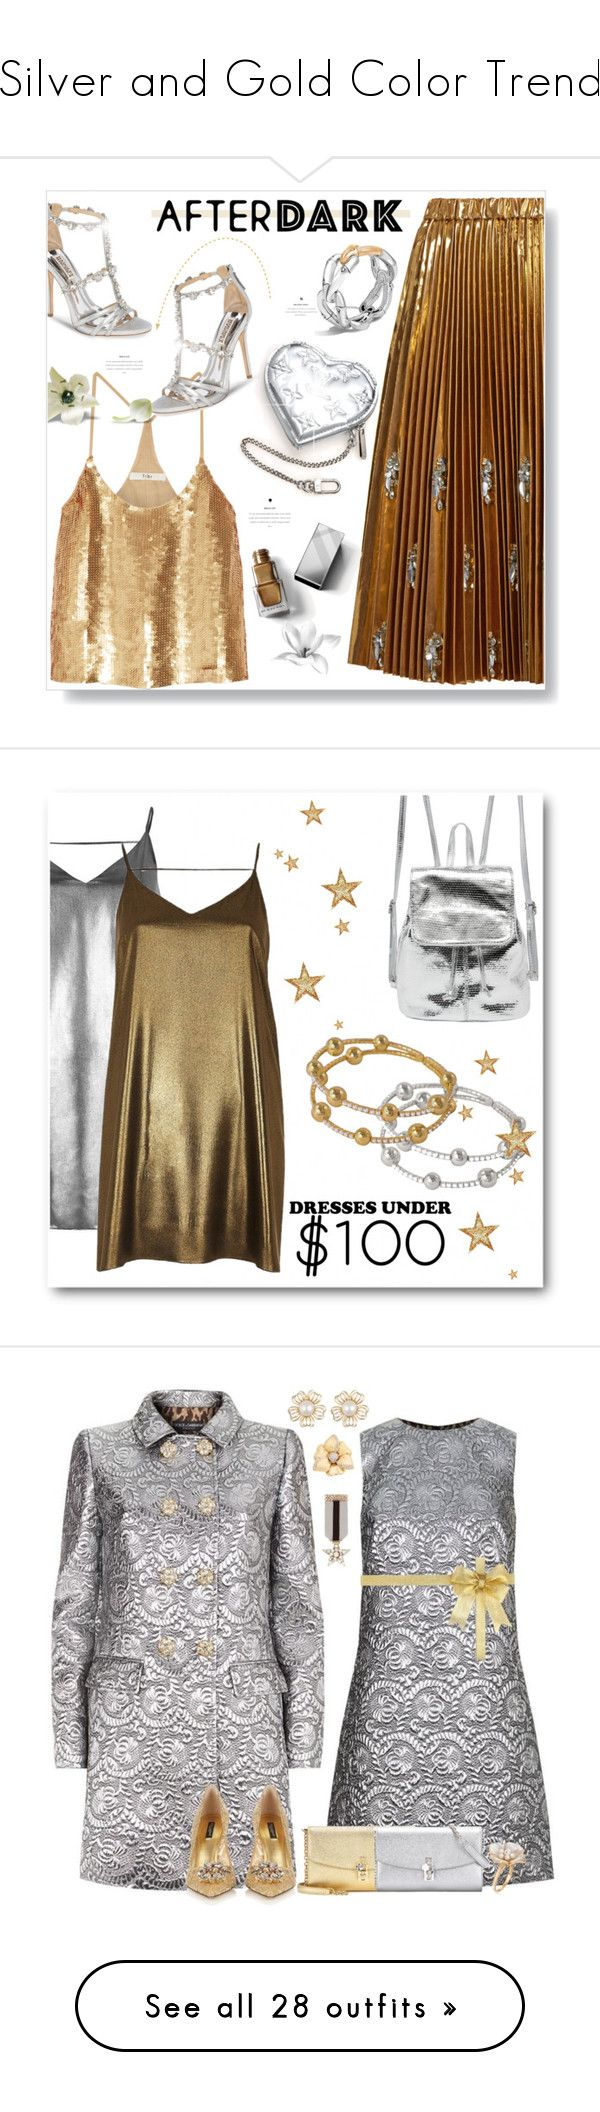 """""""Silver and Gold Color Trend"""" by yours-styling-best-friend ❤ liked on Polyvore featuring N°21, Badgley Mischka, Burberry, Louis Vuitton, John Hardy, TIBI, River Island, Dolce&Gabbana, Ross-Simons and Rina Limor"""